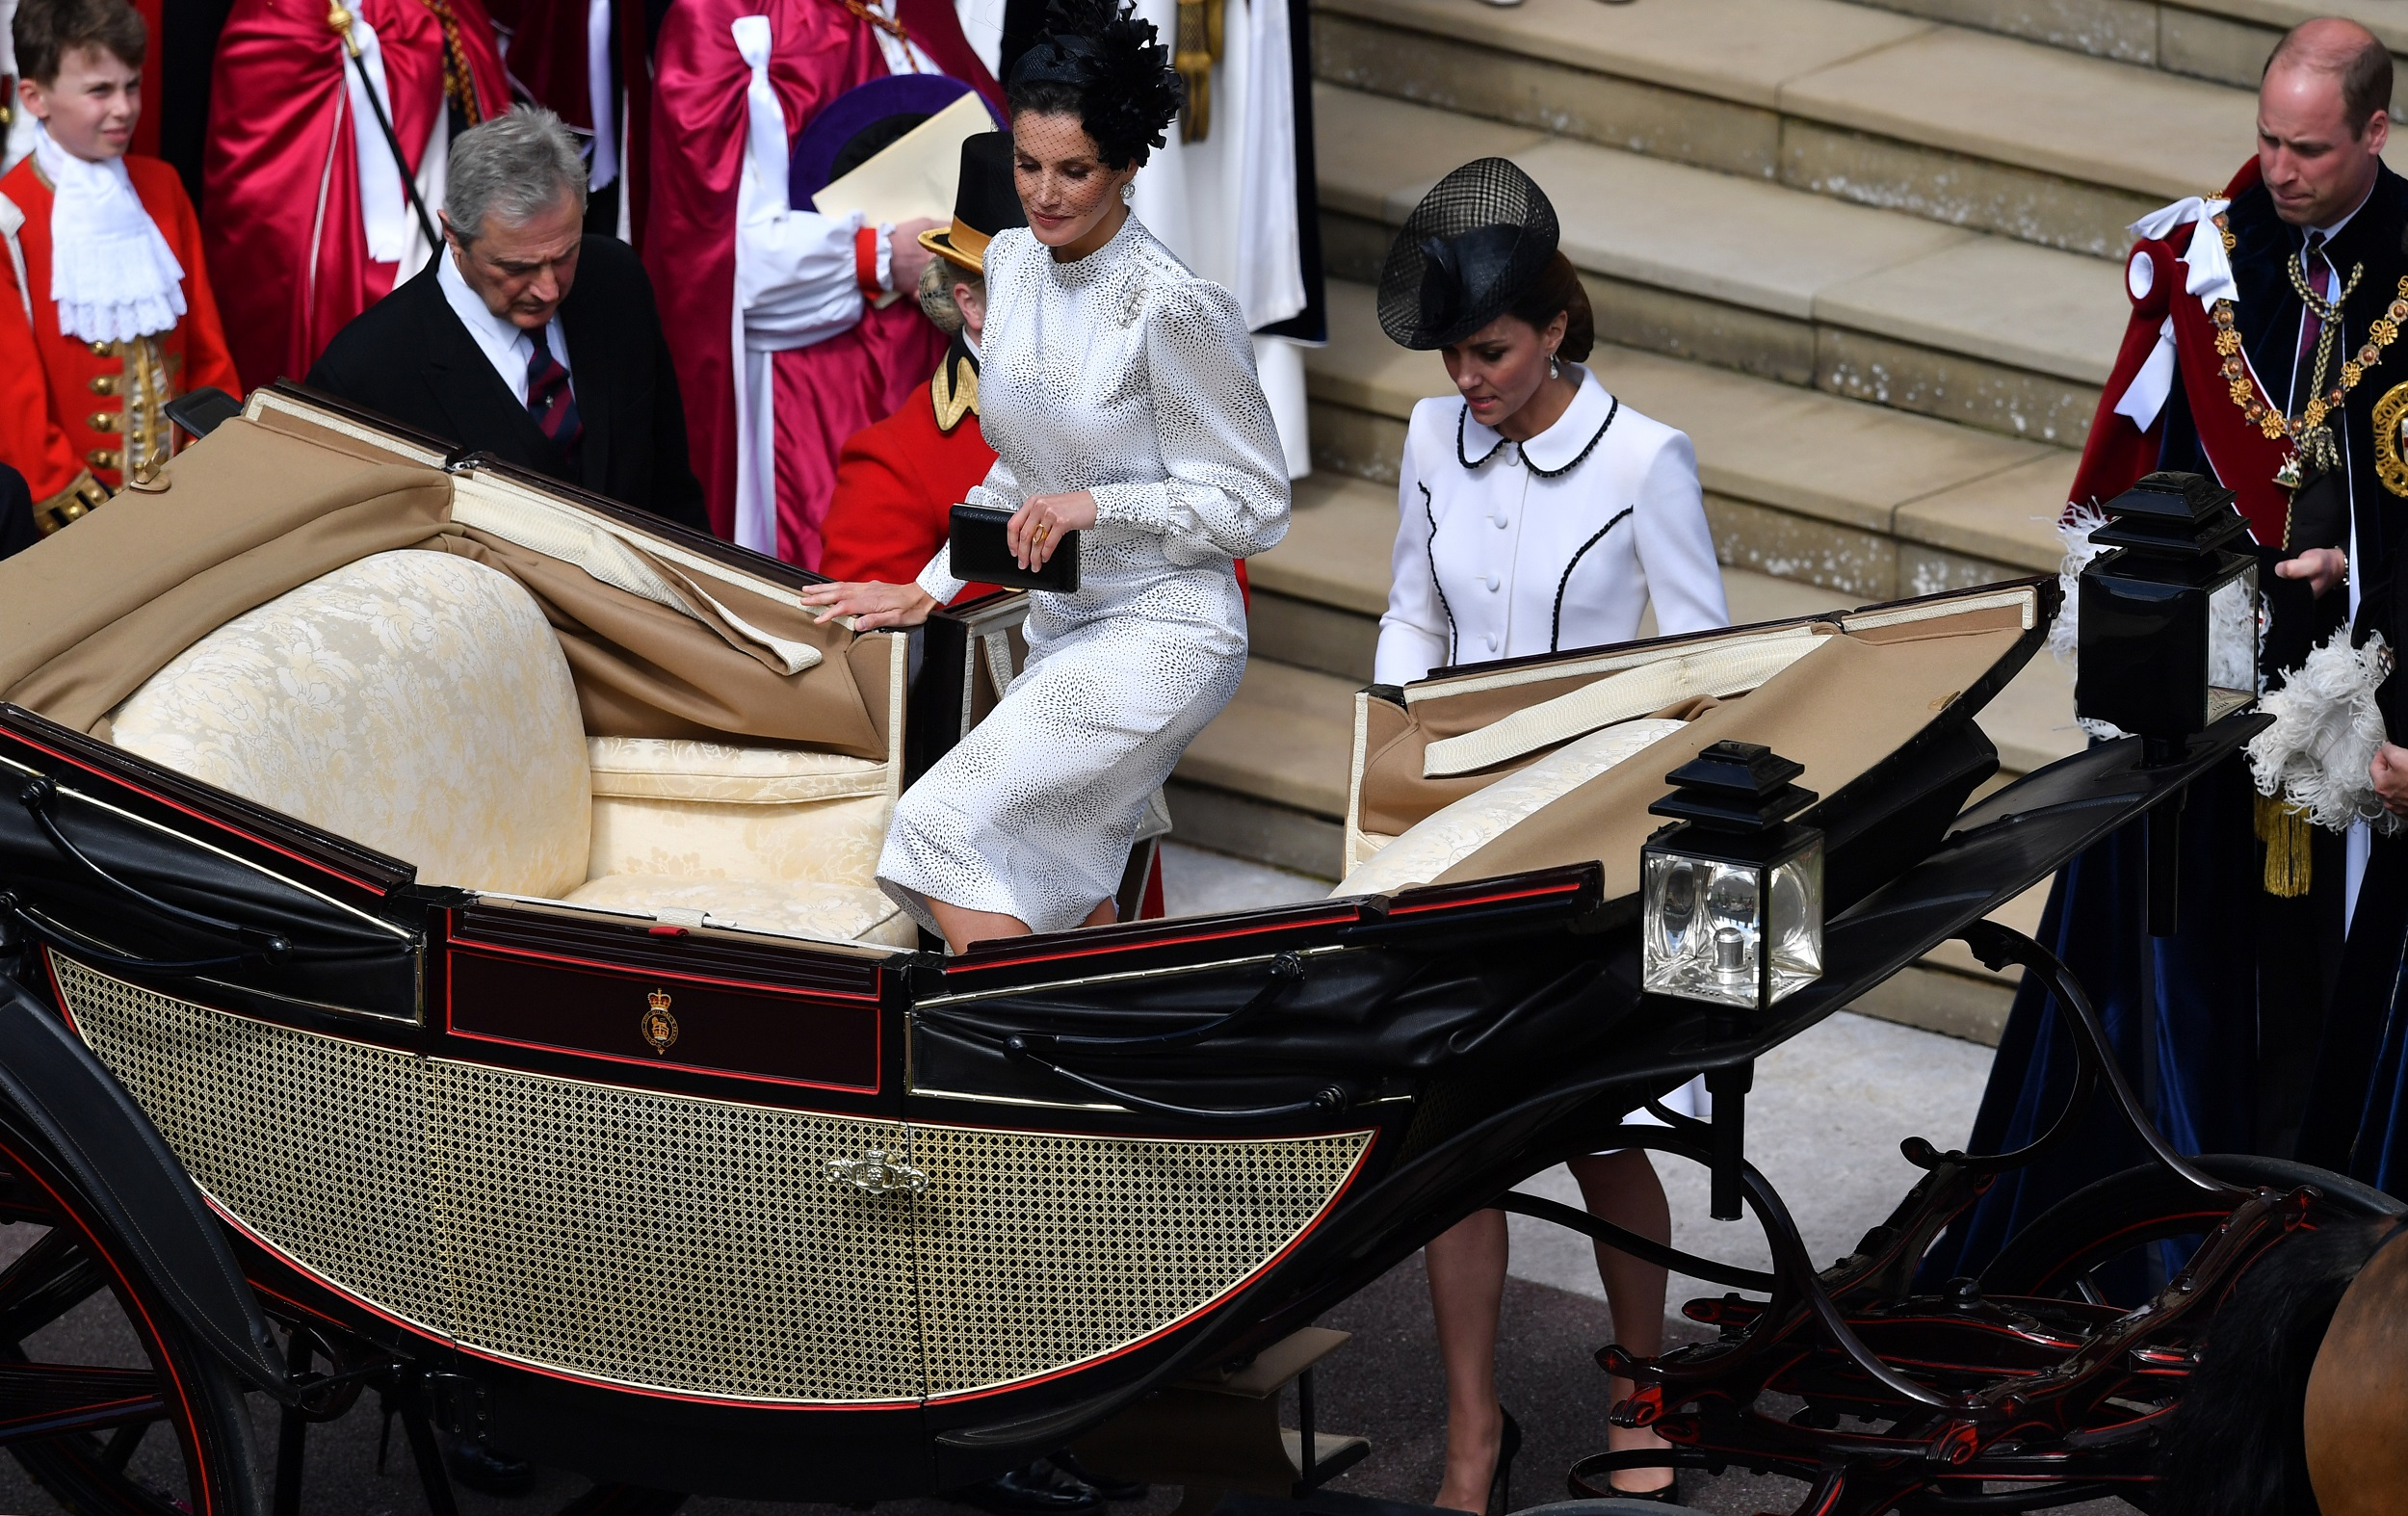 WINDSOR, ENGLAND - JUNE 17: Queen Letizia of Spain and Catherine, Duchess of Cambridge leave the Order of the Garter Service on June 17, 2019 in Windsor, England. The Order of the Garter is the senior and oldest British Order of Chivalry, founded by Edward III in 1348. The Garter ceremonial dates from 1948, when formal installation was revived by King George VI for the first time since 1805. (Photo by Ben Stansall - WPA Pool/Getty Images)